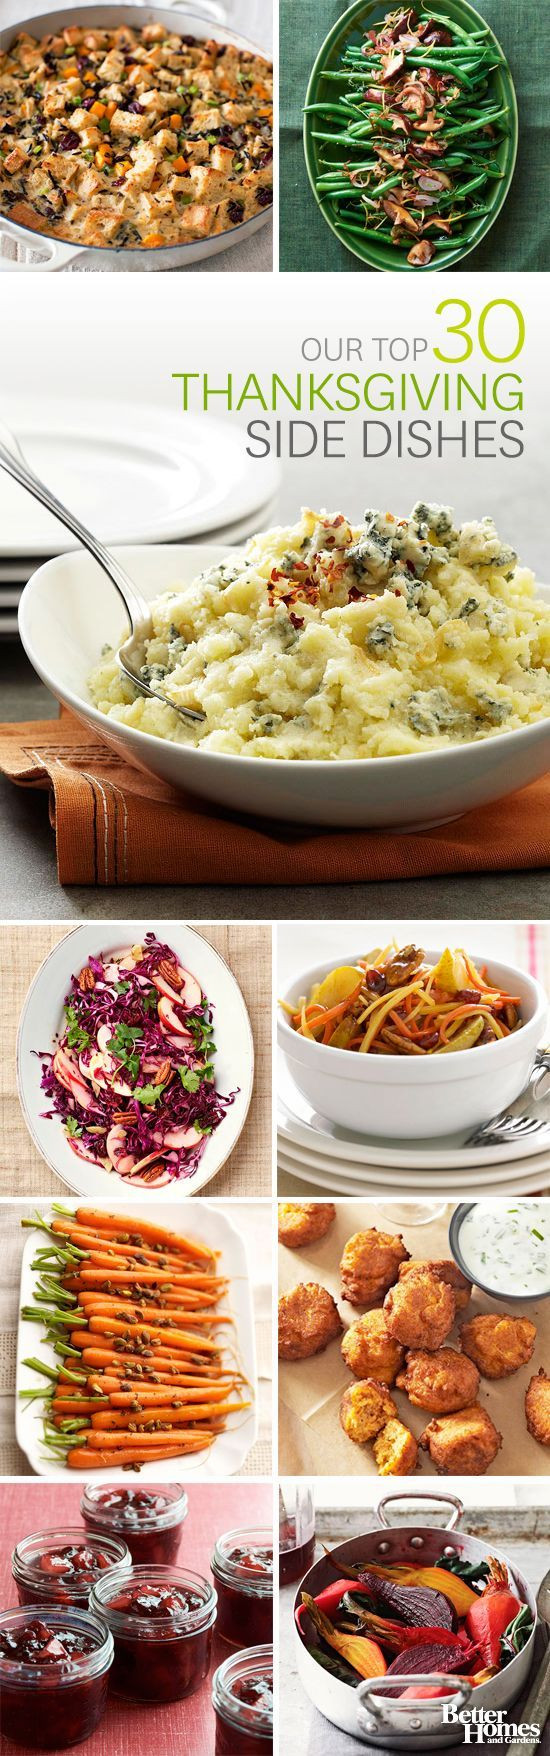 Thanksgiving Dinner Side Dishes Recipes  212 best images about Thanksgiving recipes on Pinterest